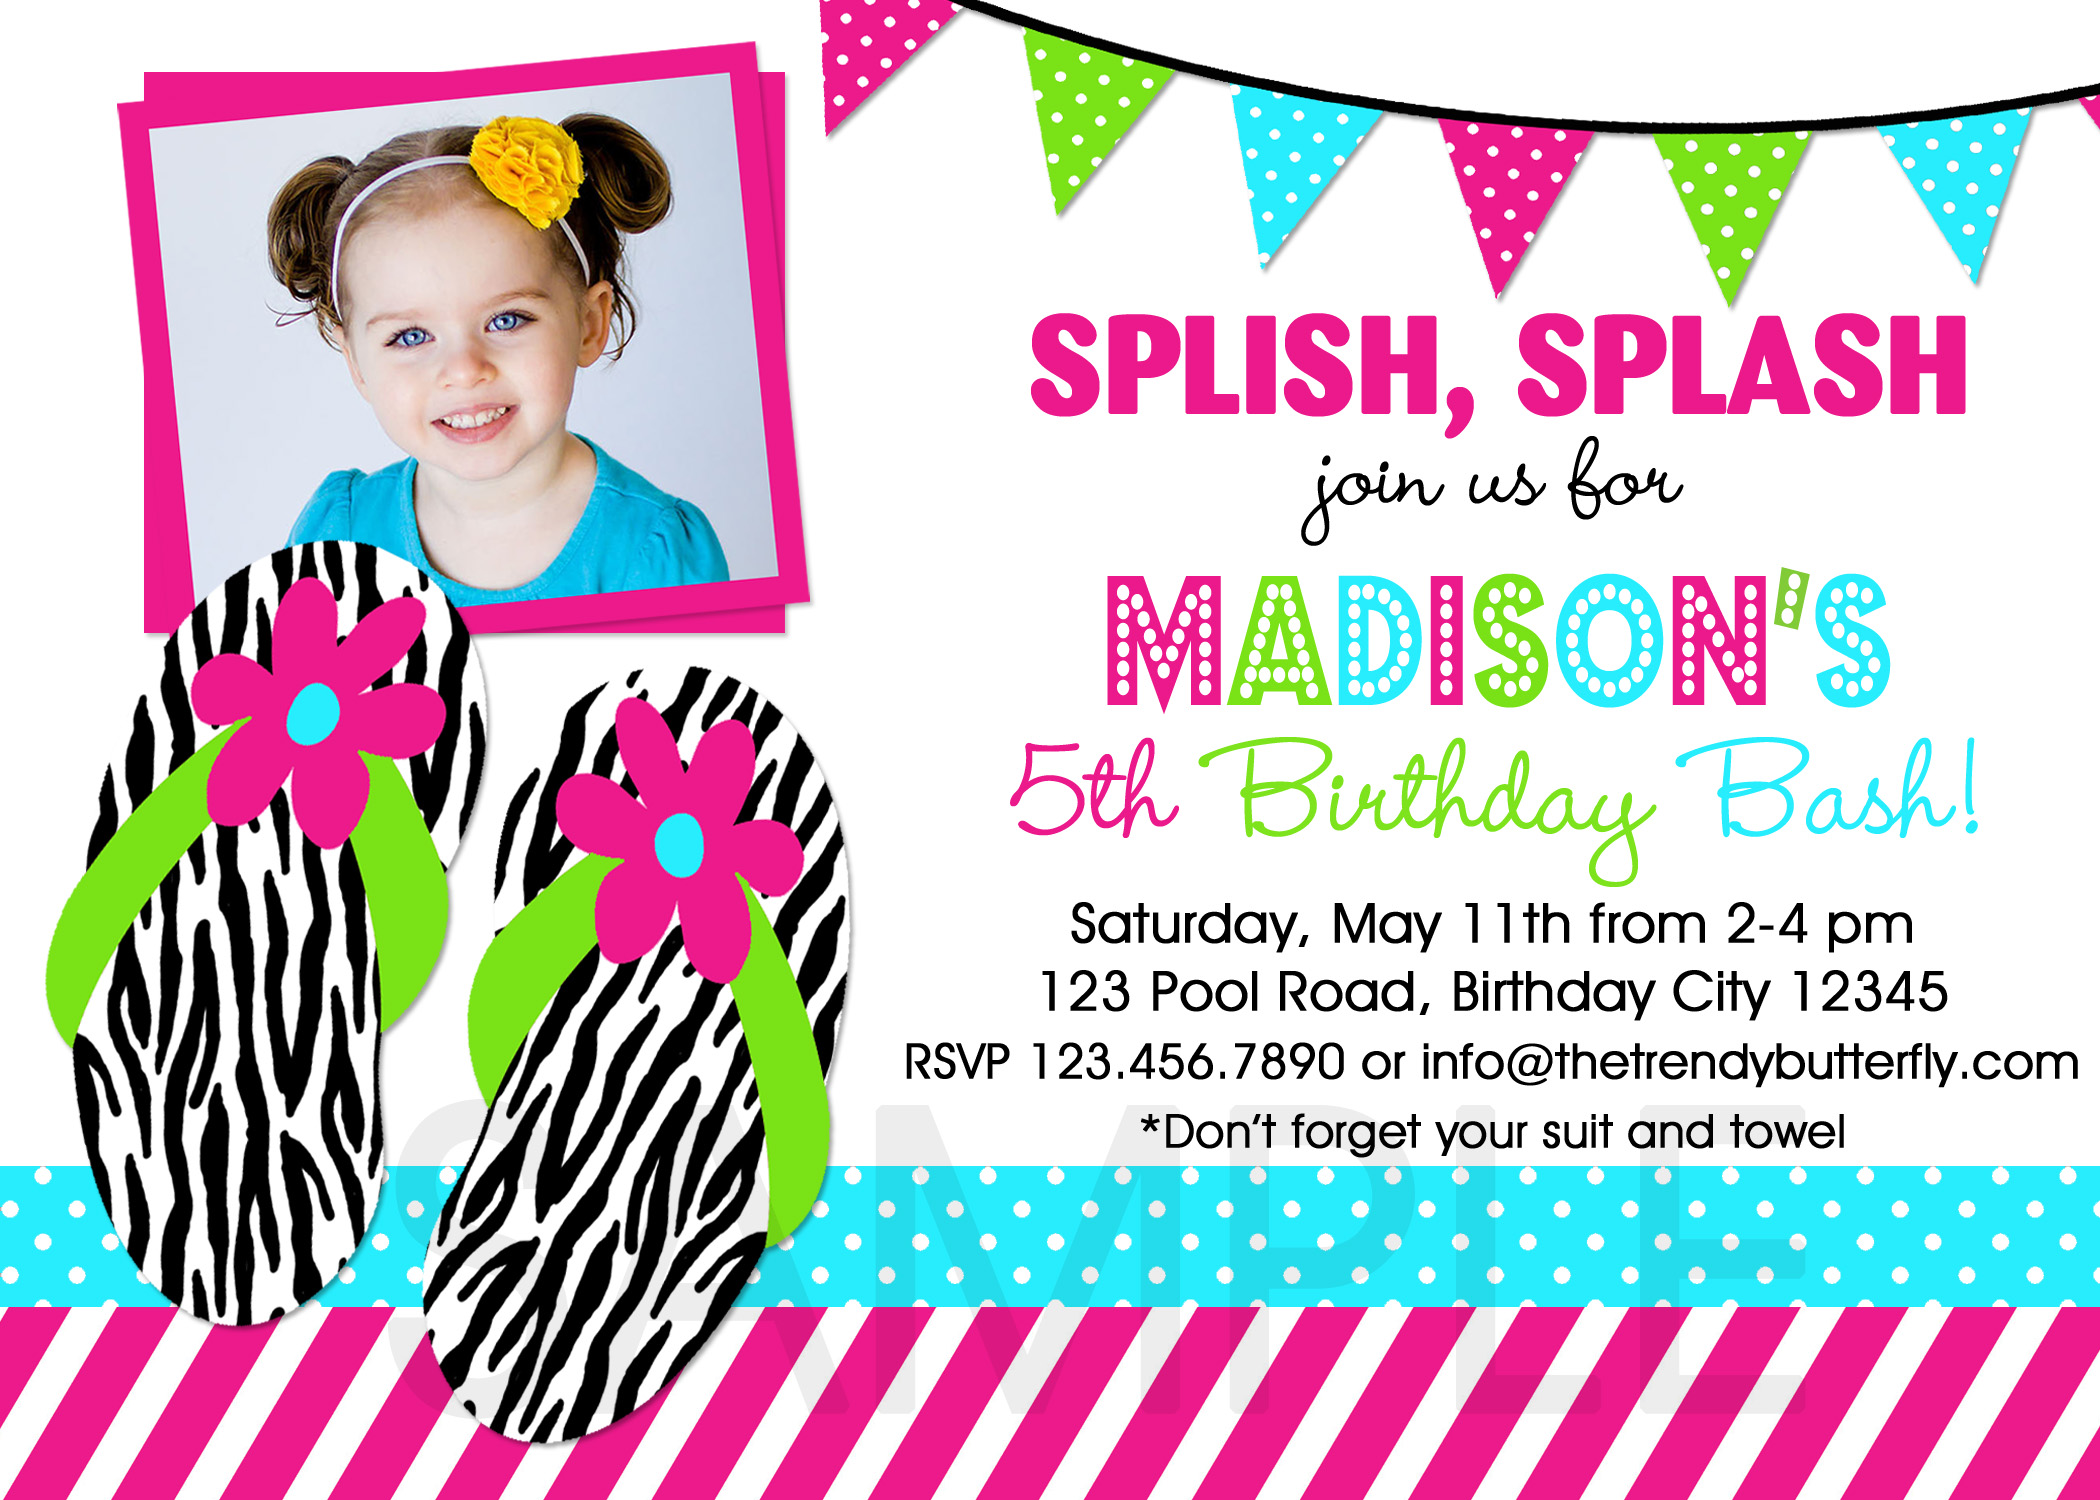 Pool Party Birthday Party Invitations Girls Pool Party Pool – Birthday Pool Party Invitation